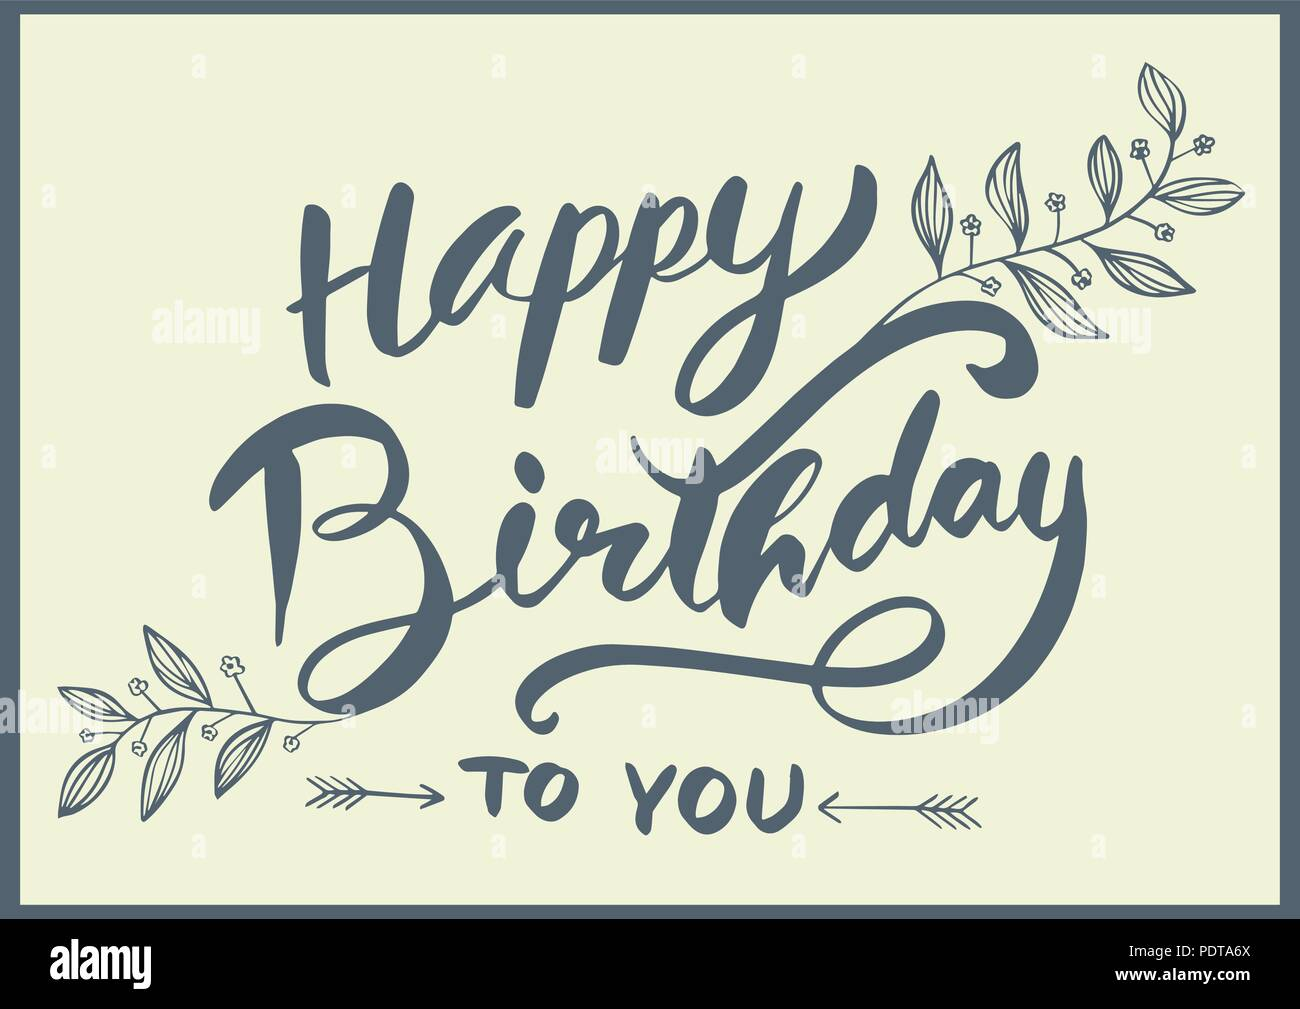 Happy Birthday To You Lettering For Card Hand Drawn Style Vector Illustration